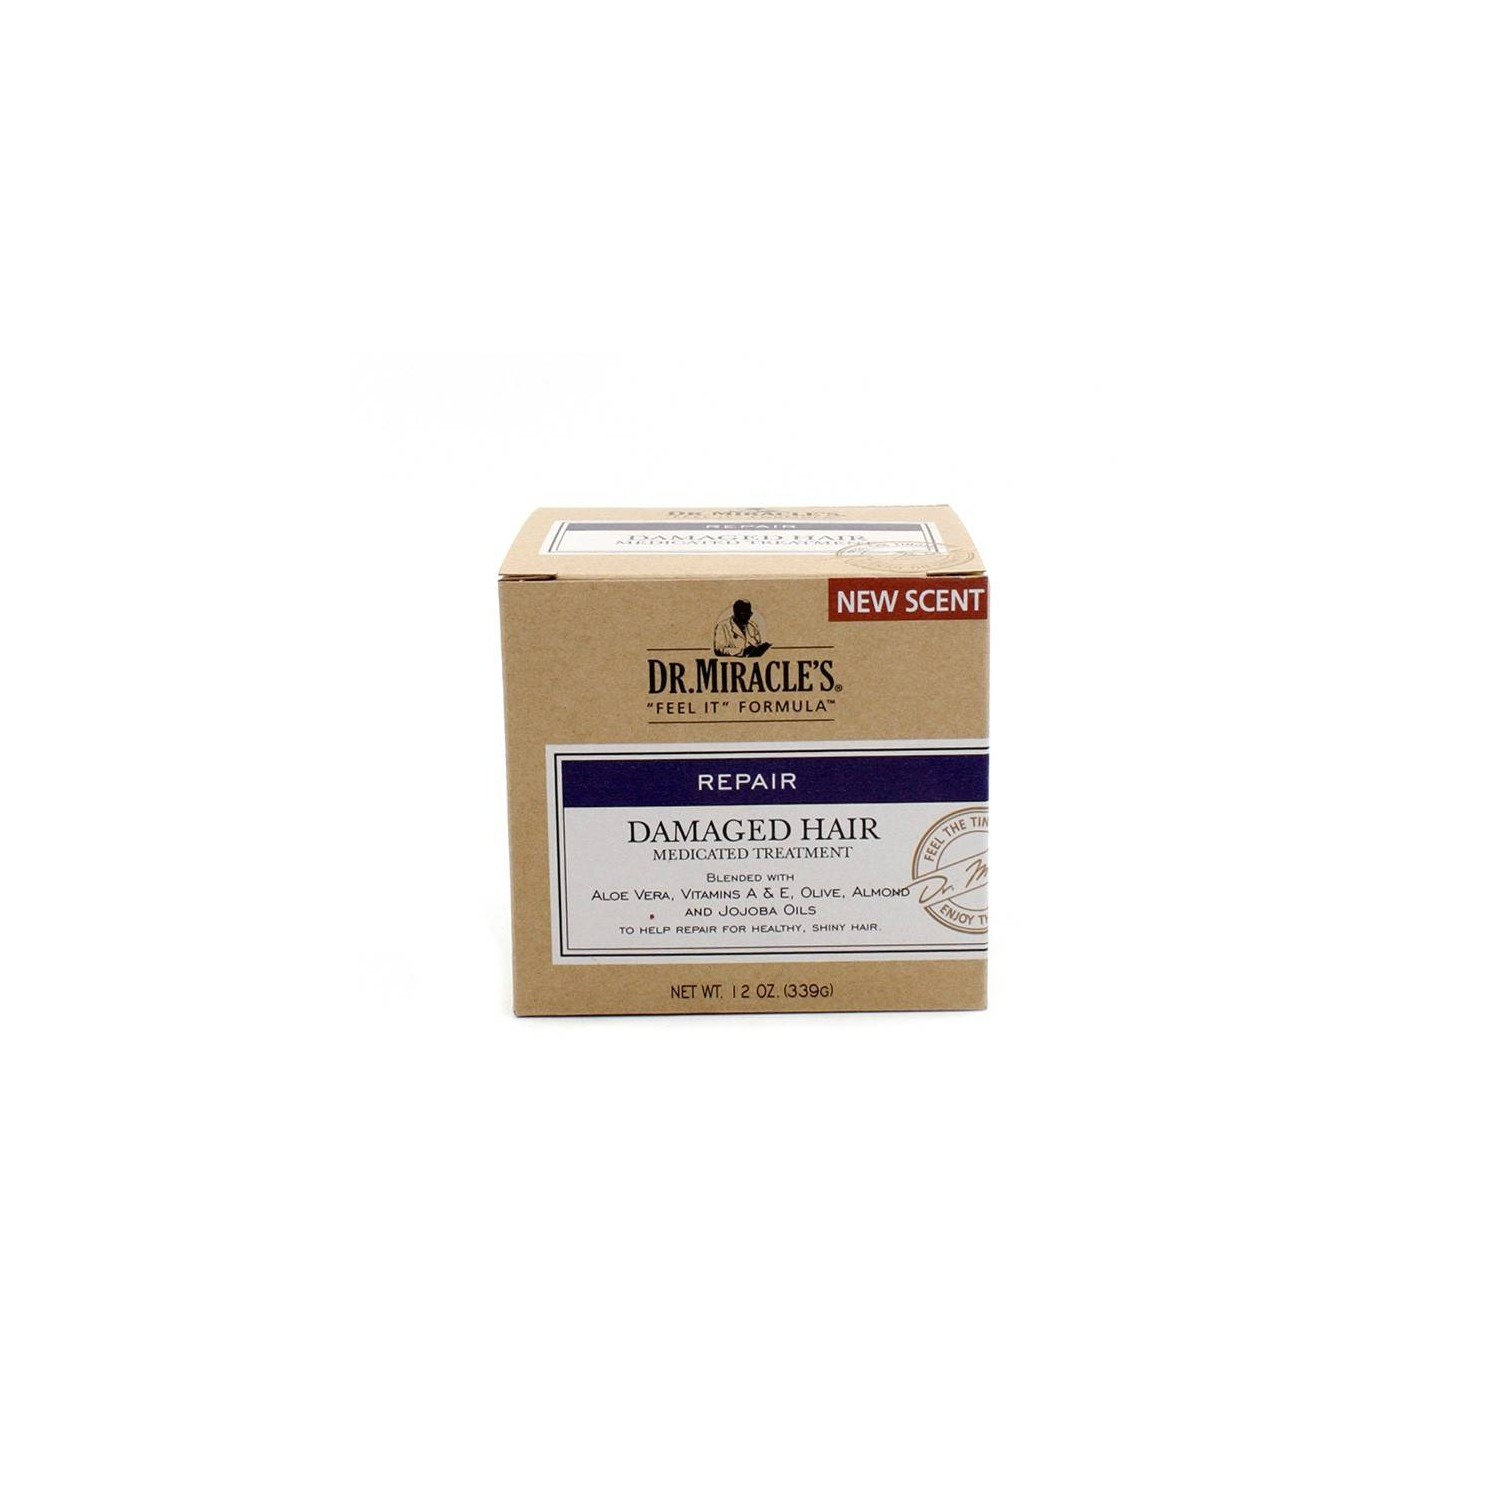 Dr. Miracles Damaged Hair Medicated Treatment 339 Gr